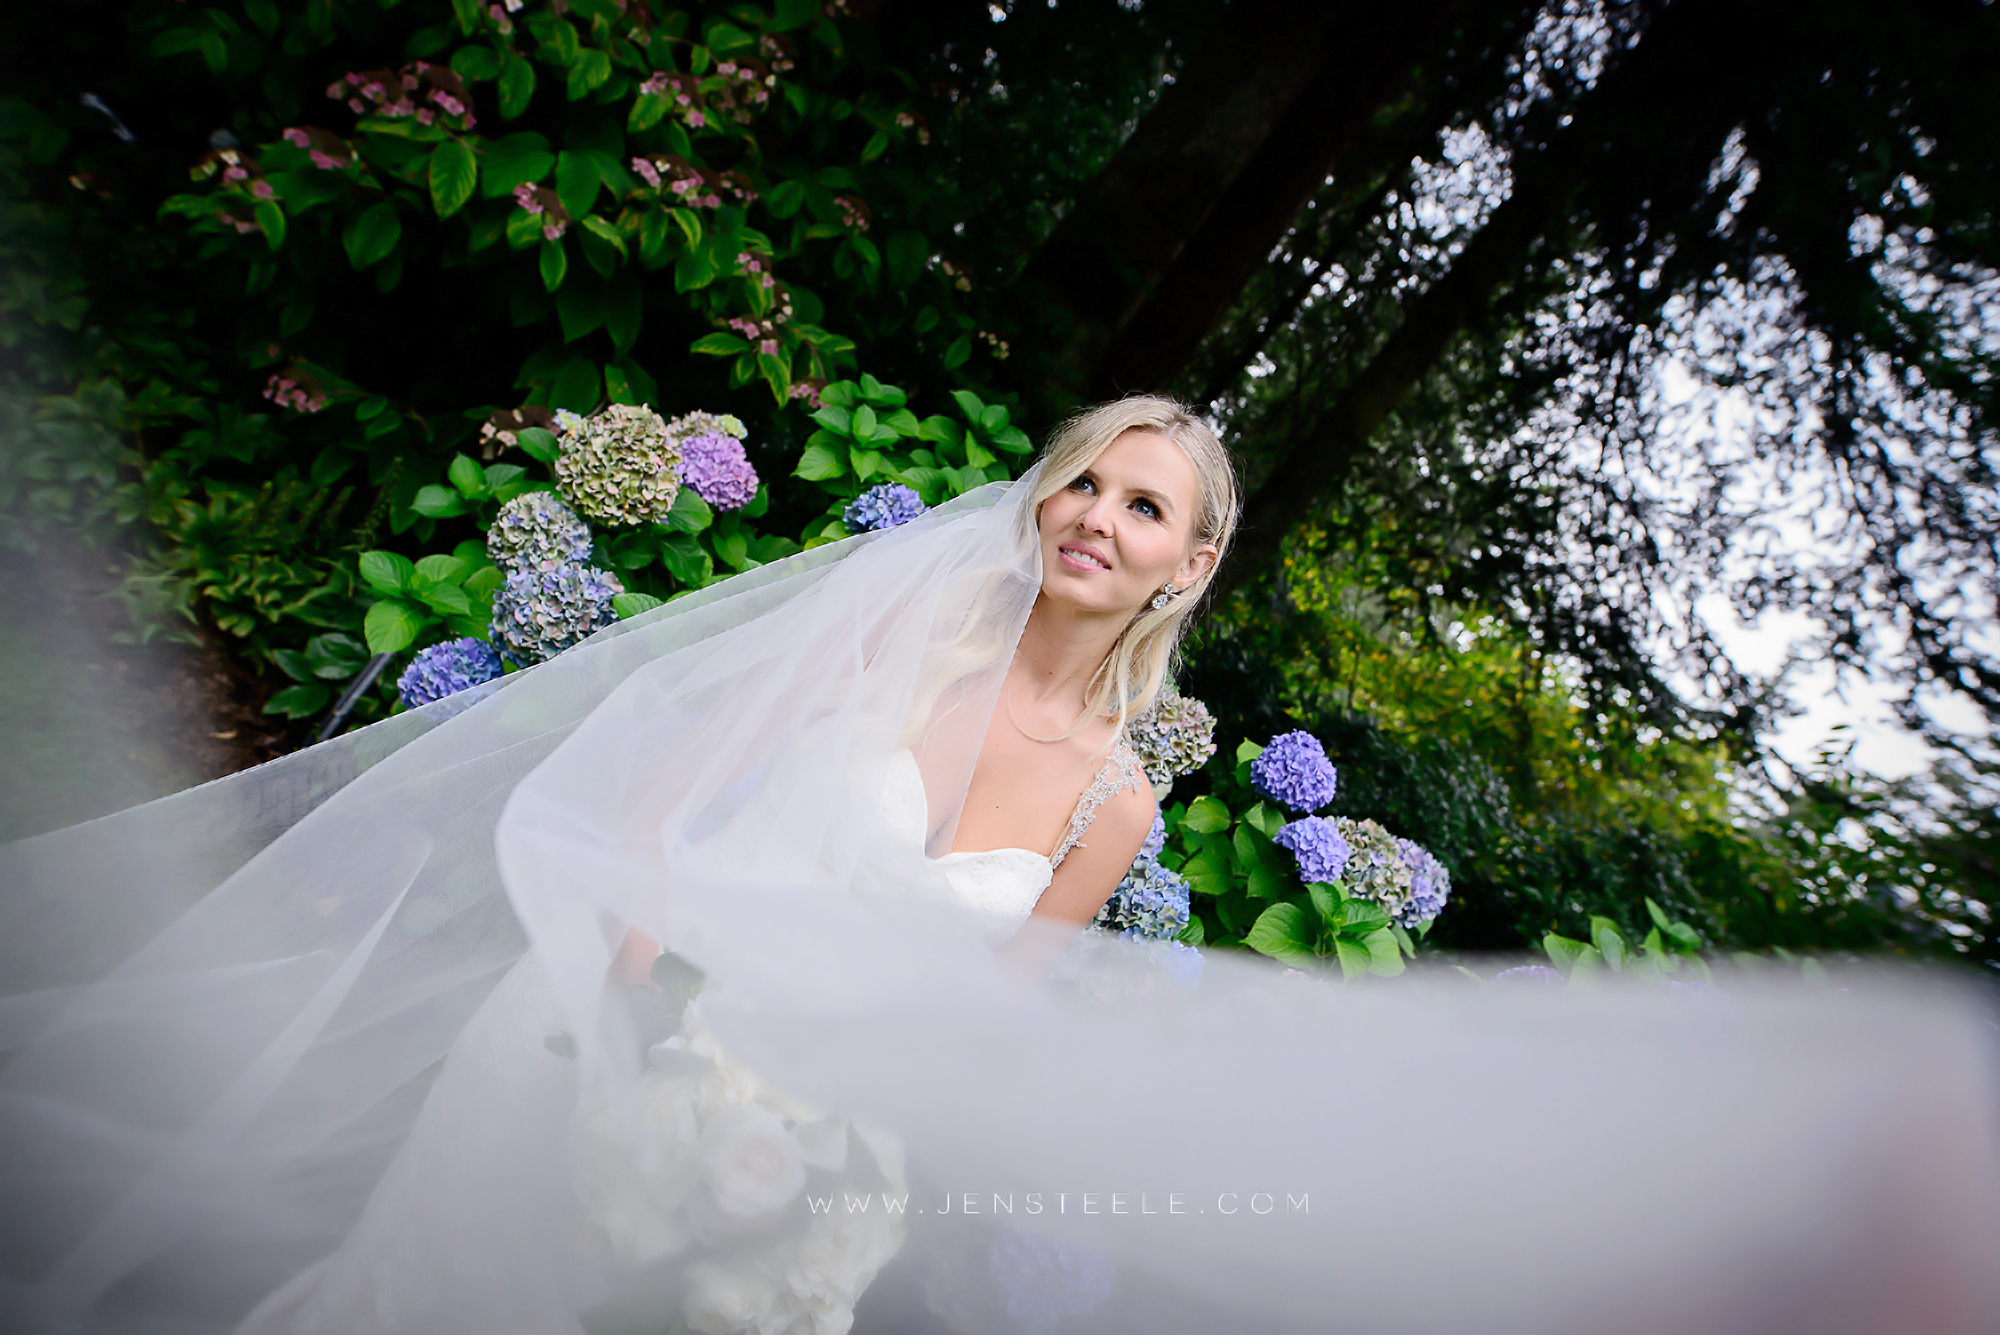 OAK-BAY-BEACH-HOTEL-WEDDING-PHOTOGRAPHERS-VICTORIA-BC-JENSTEELE